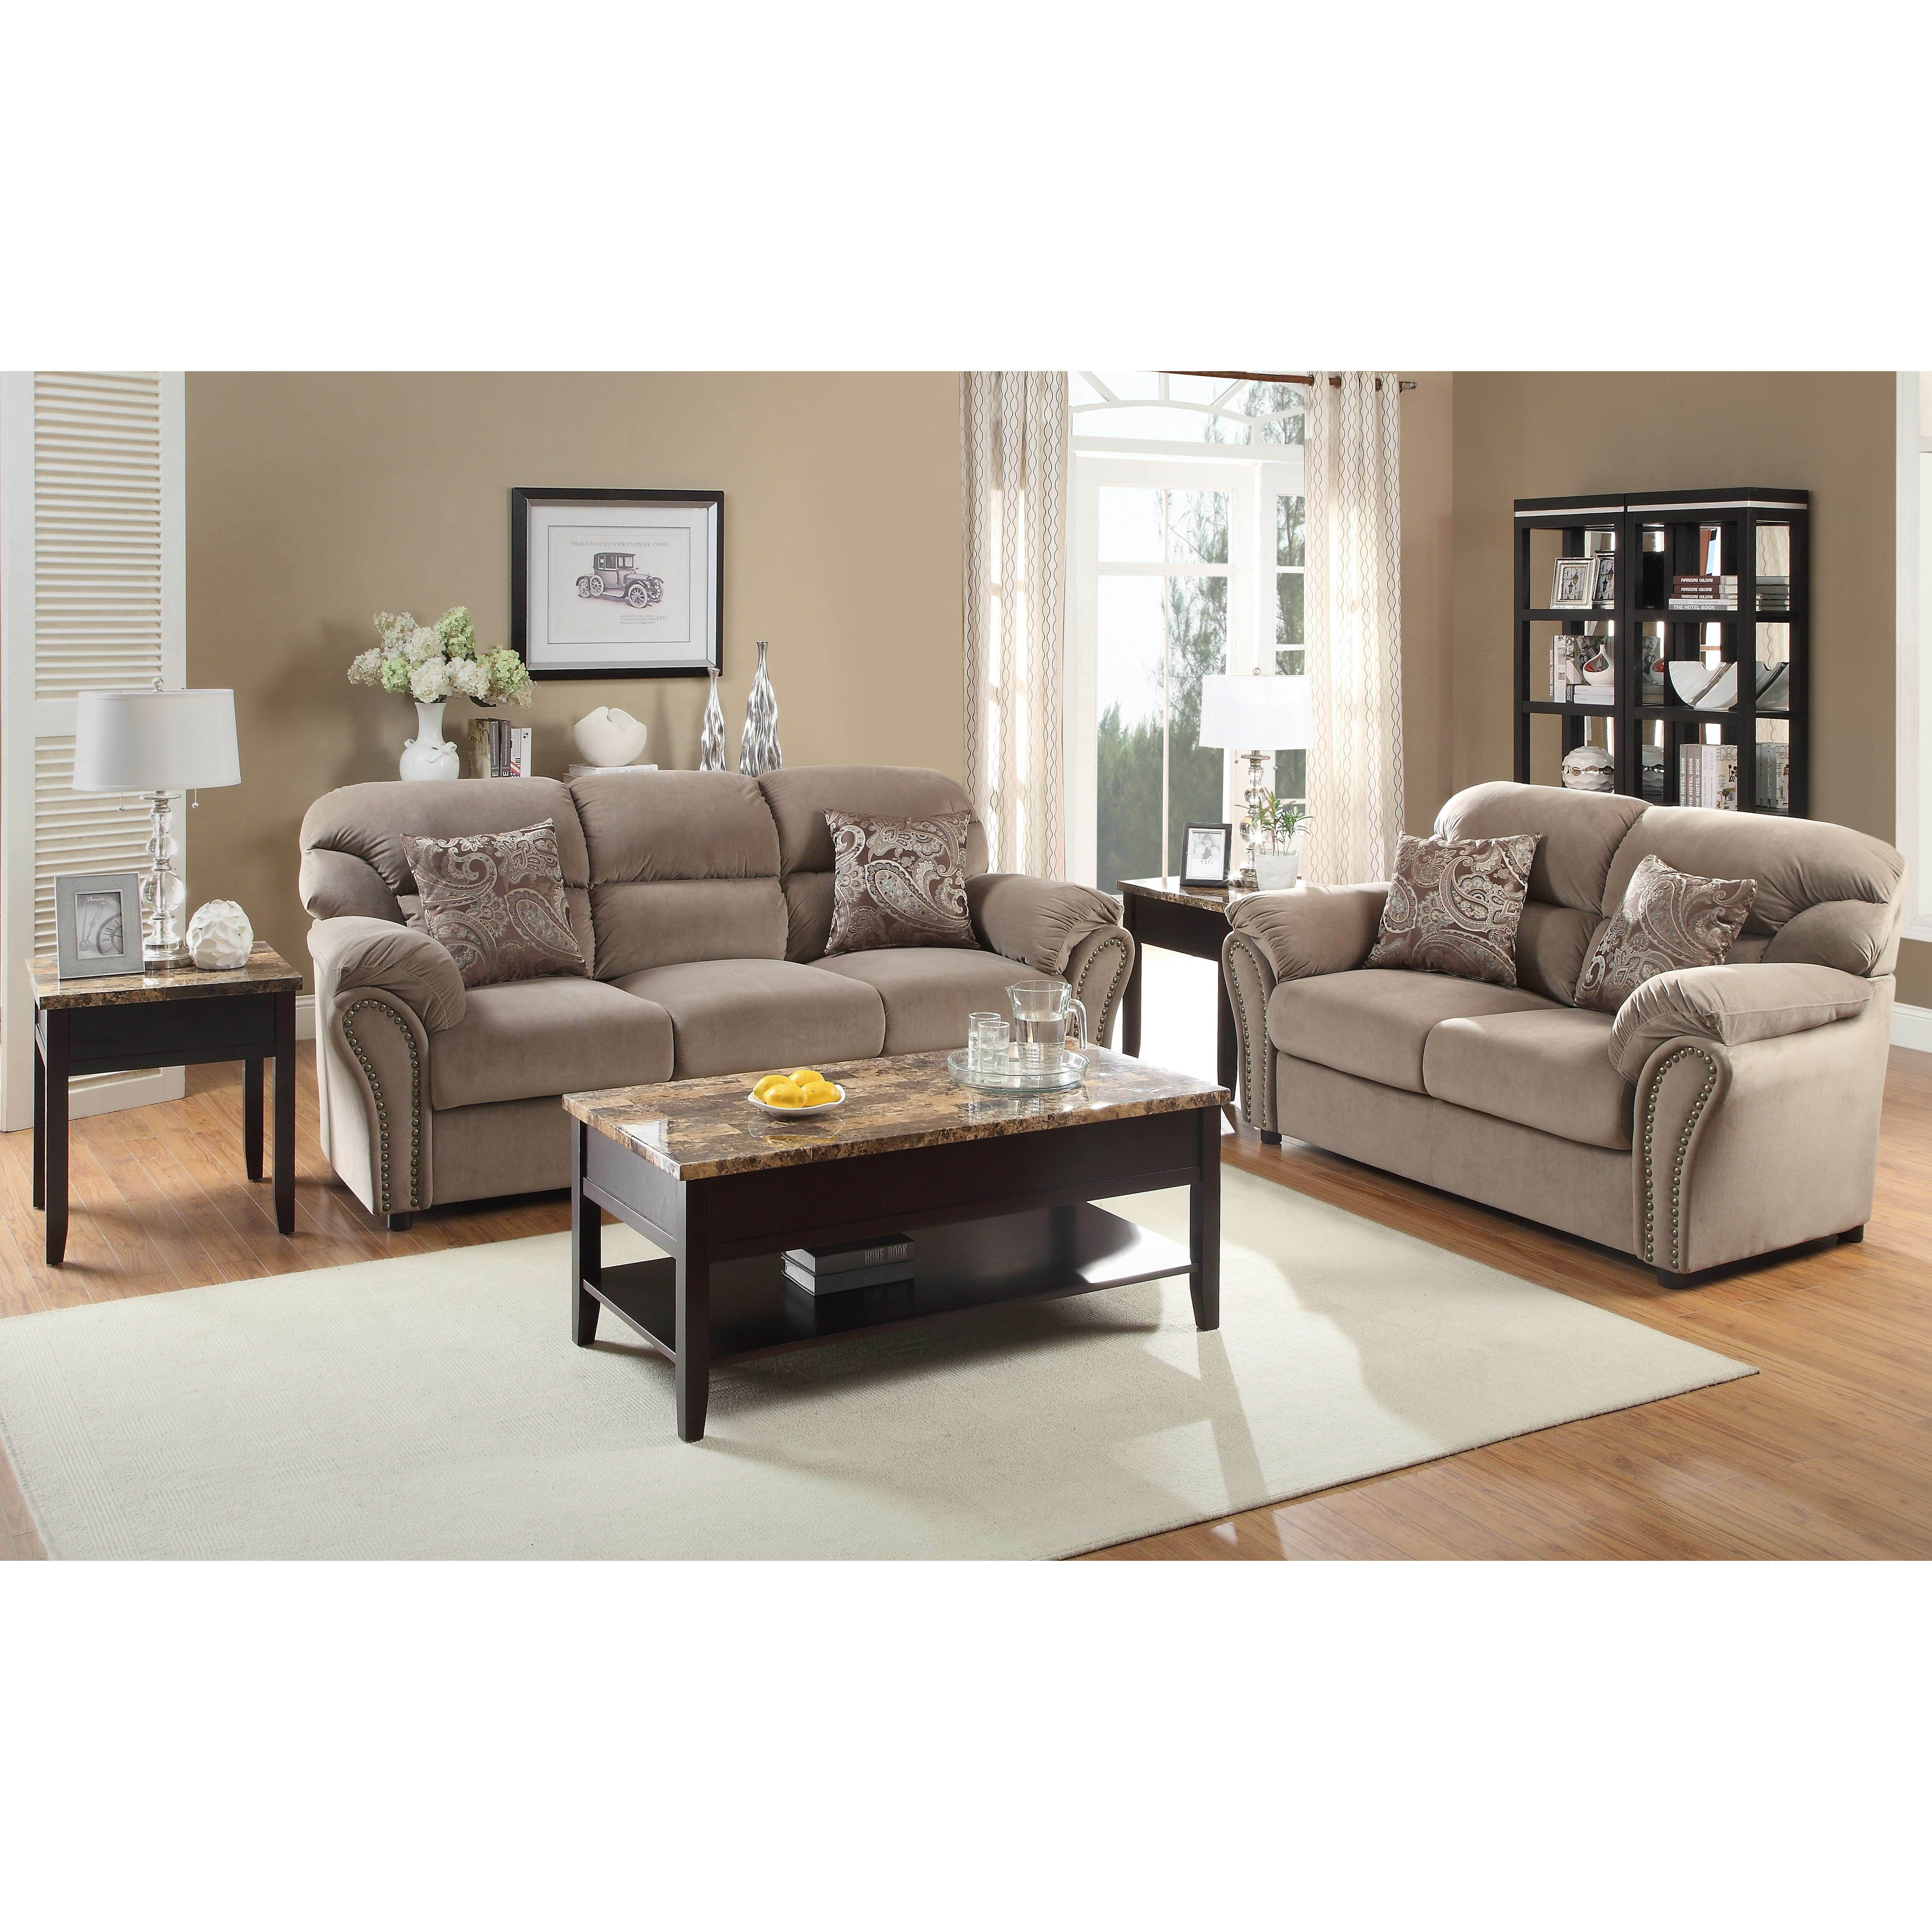 Woodhaven Living Room Furniture Woodhaven Hill Orton Coffee Table With Lift Top Reviews Wayfair